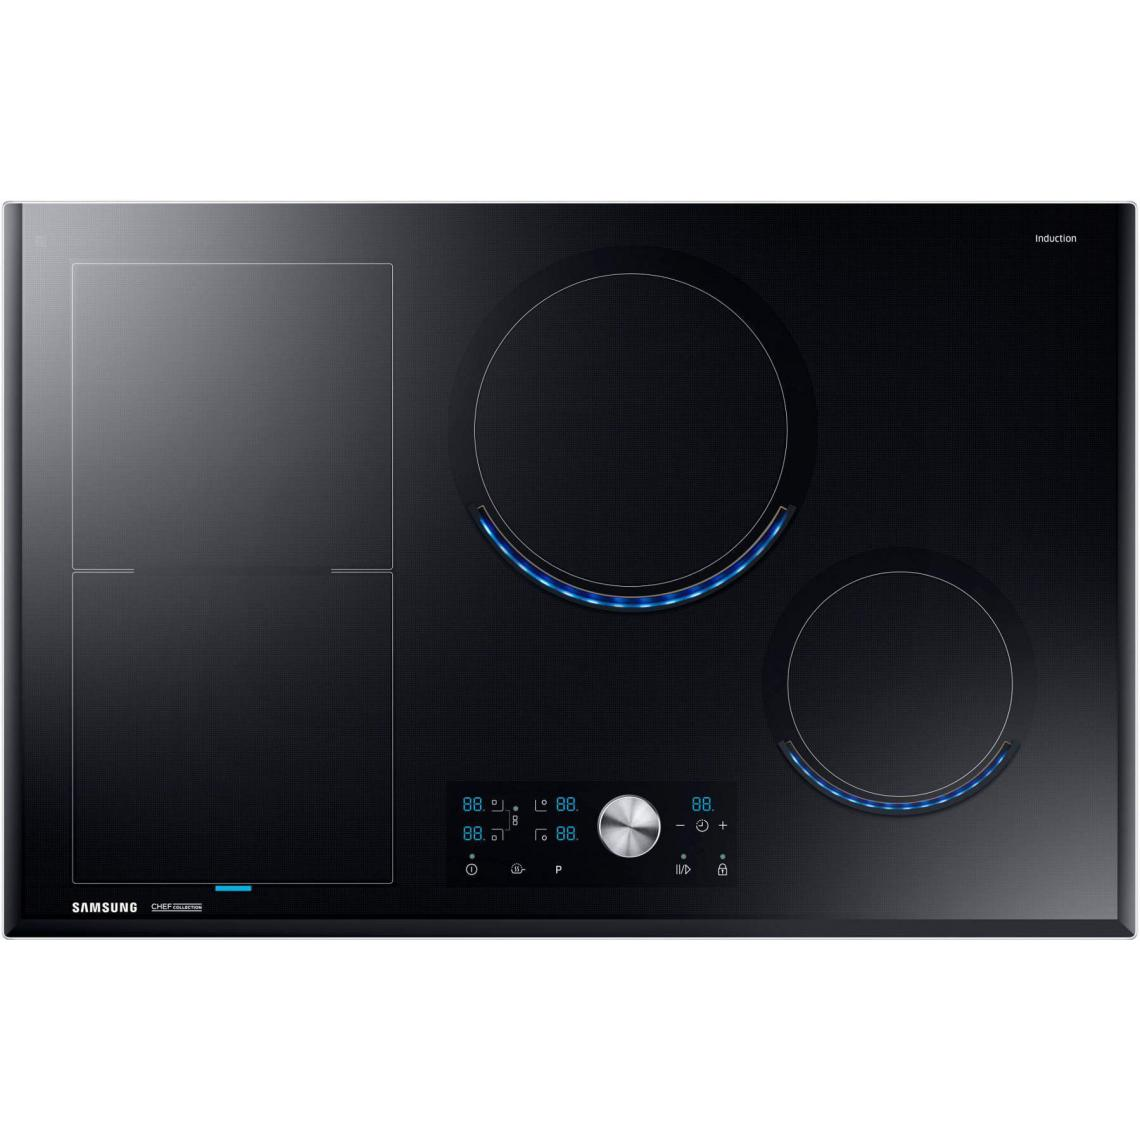 Samsung Plaque induction SAMSUNG 7000W 80cm, NZ 84 J 9770 EK